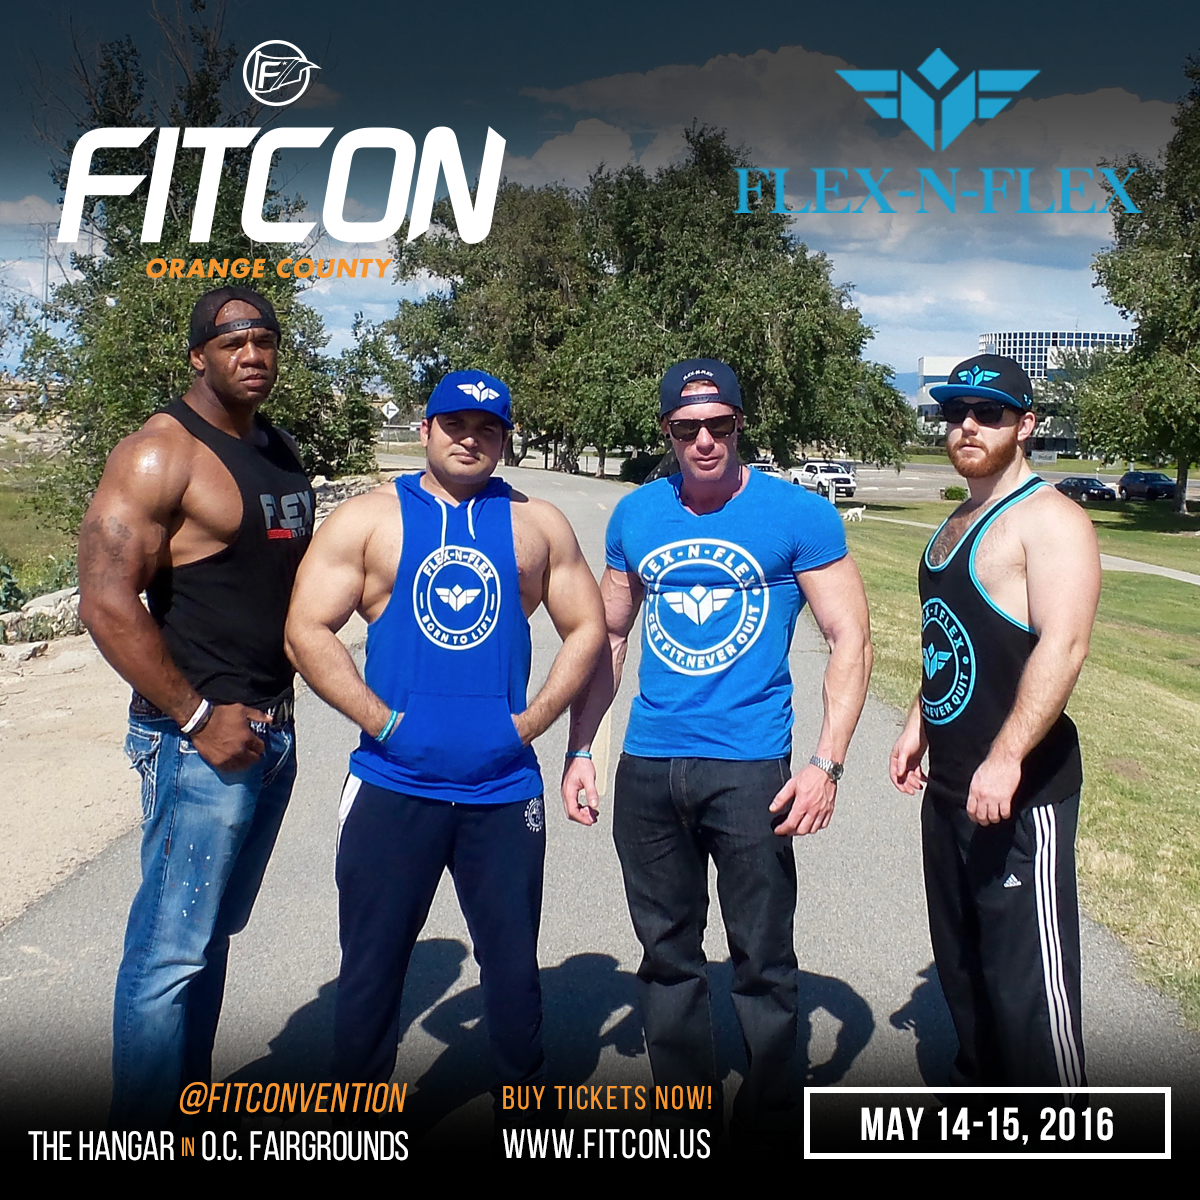 FITCON - ORANGE COUNTY May 14-15, 2016